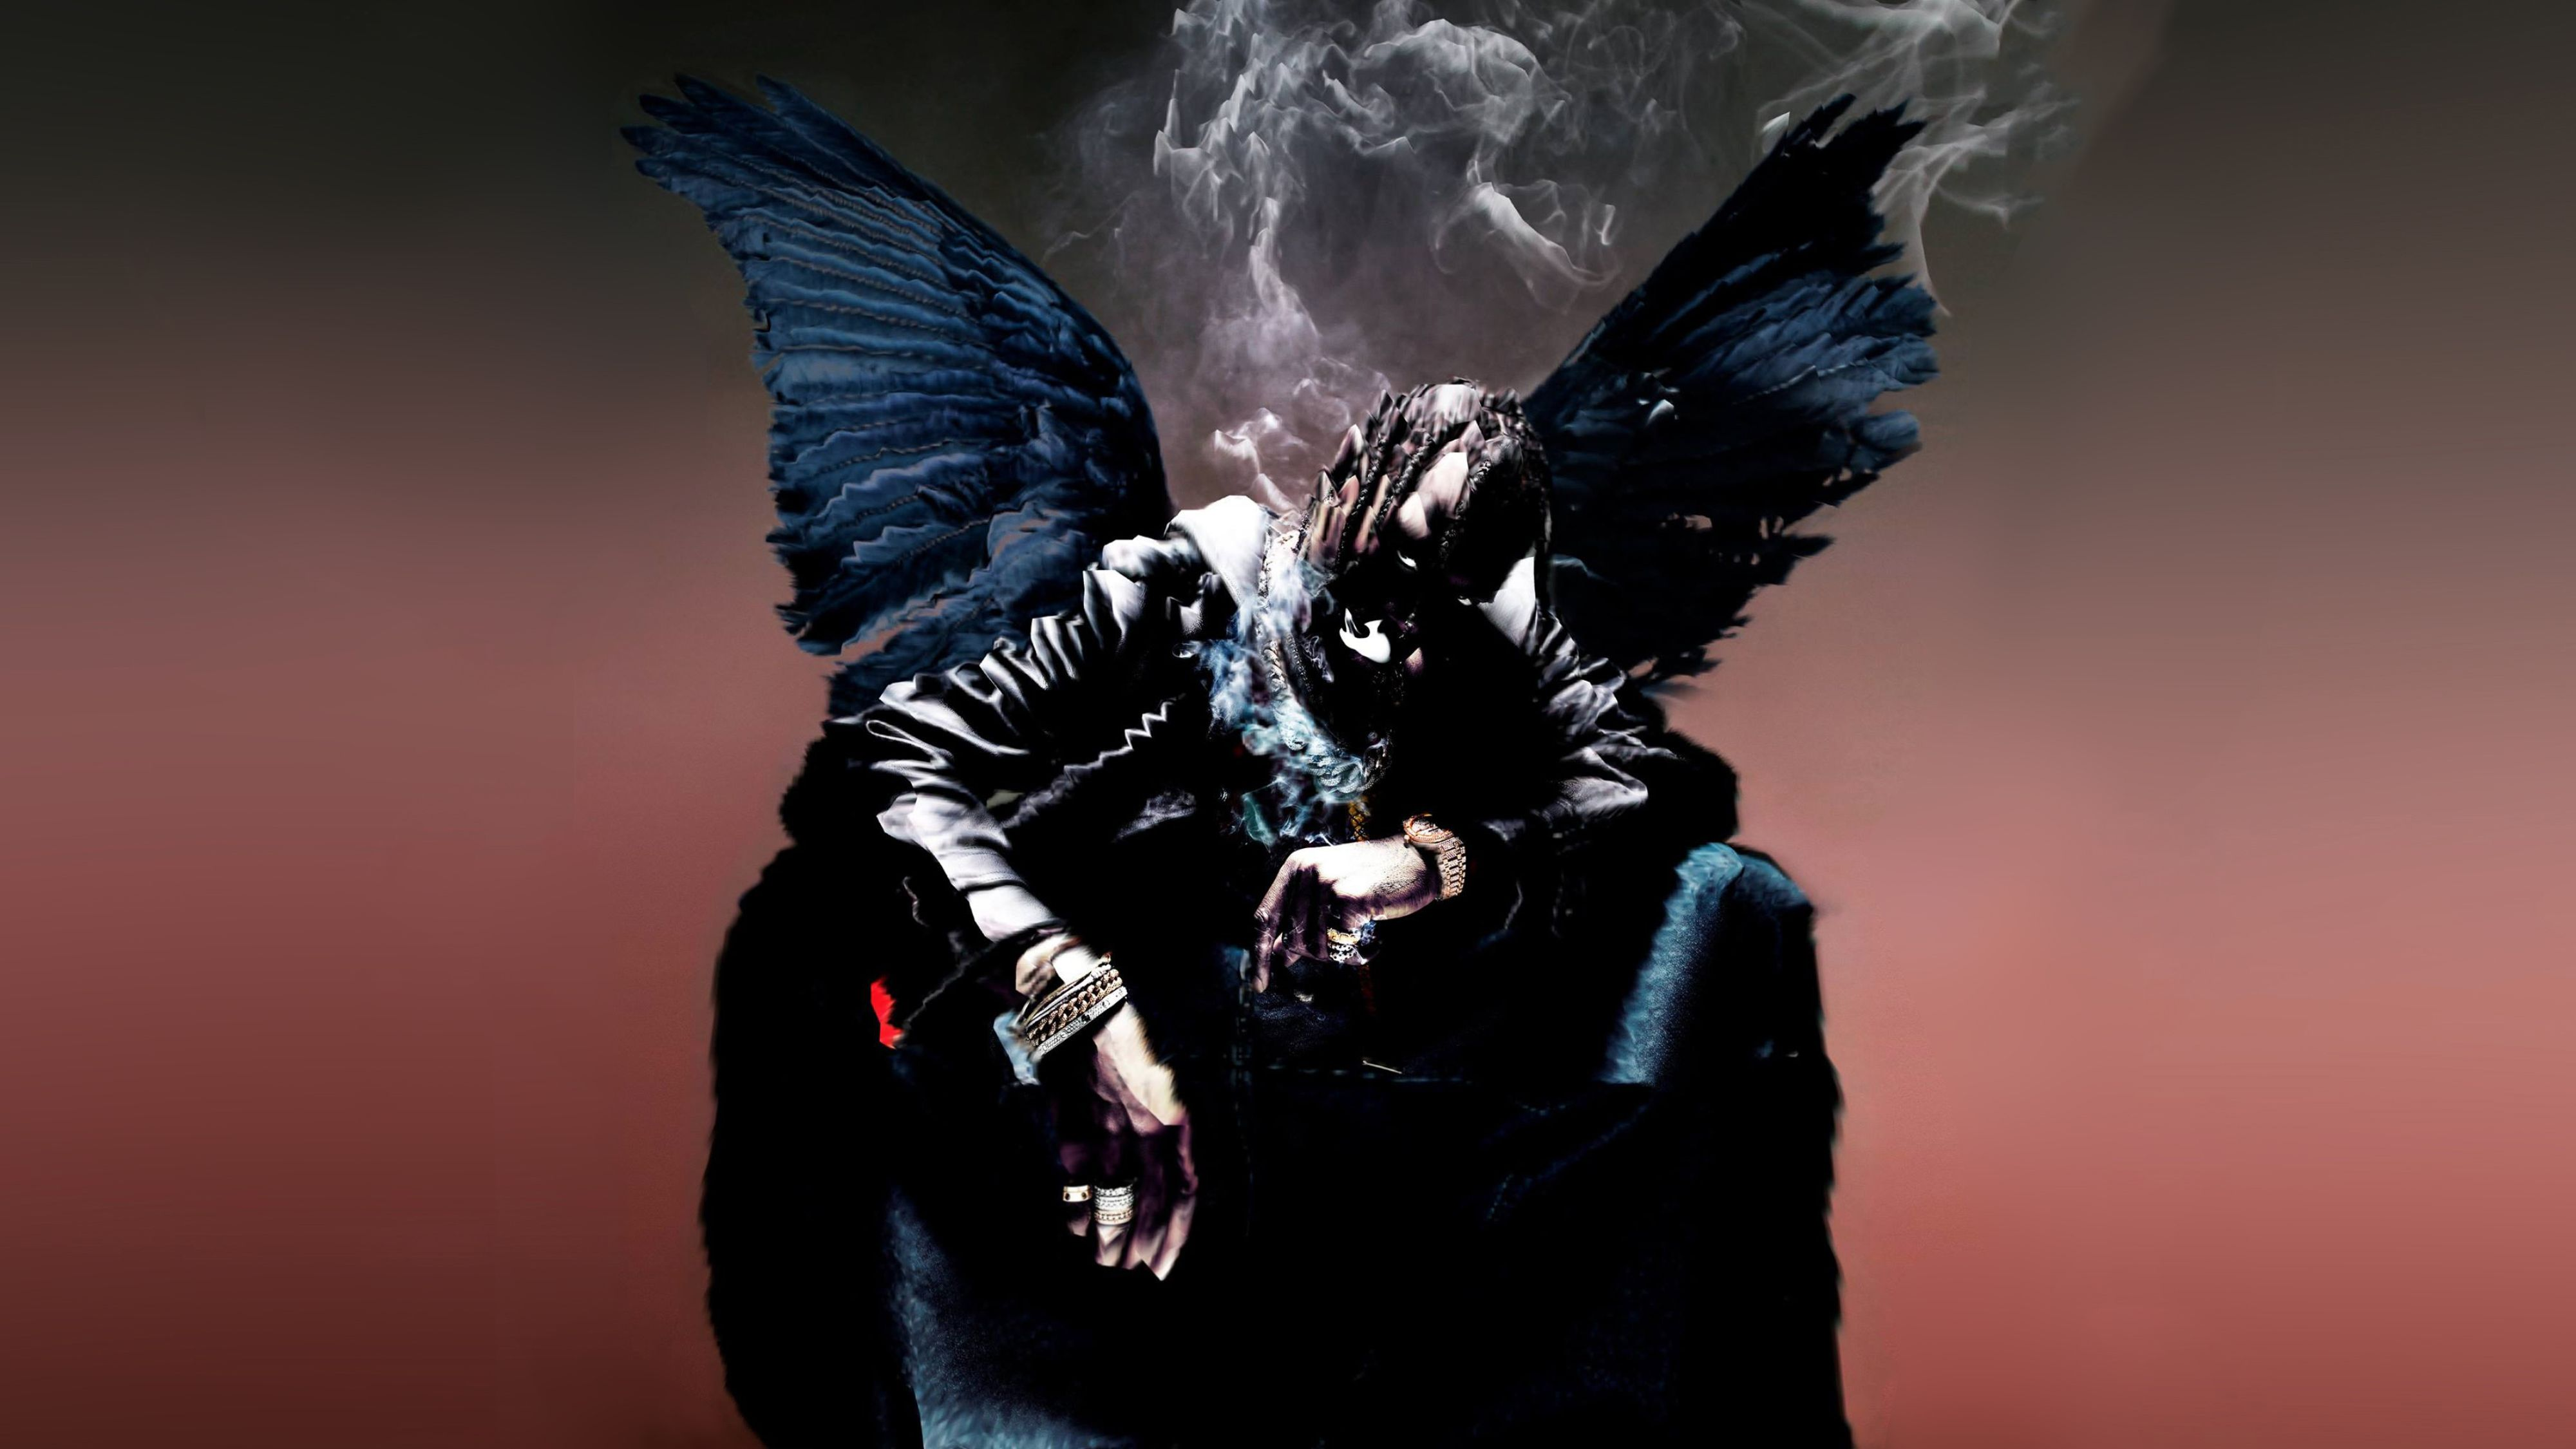 Birds in the Trap Sing McKnight (Fondo de pantalla 4k) - Álbum en Imgur